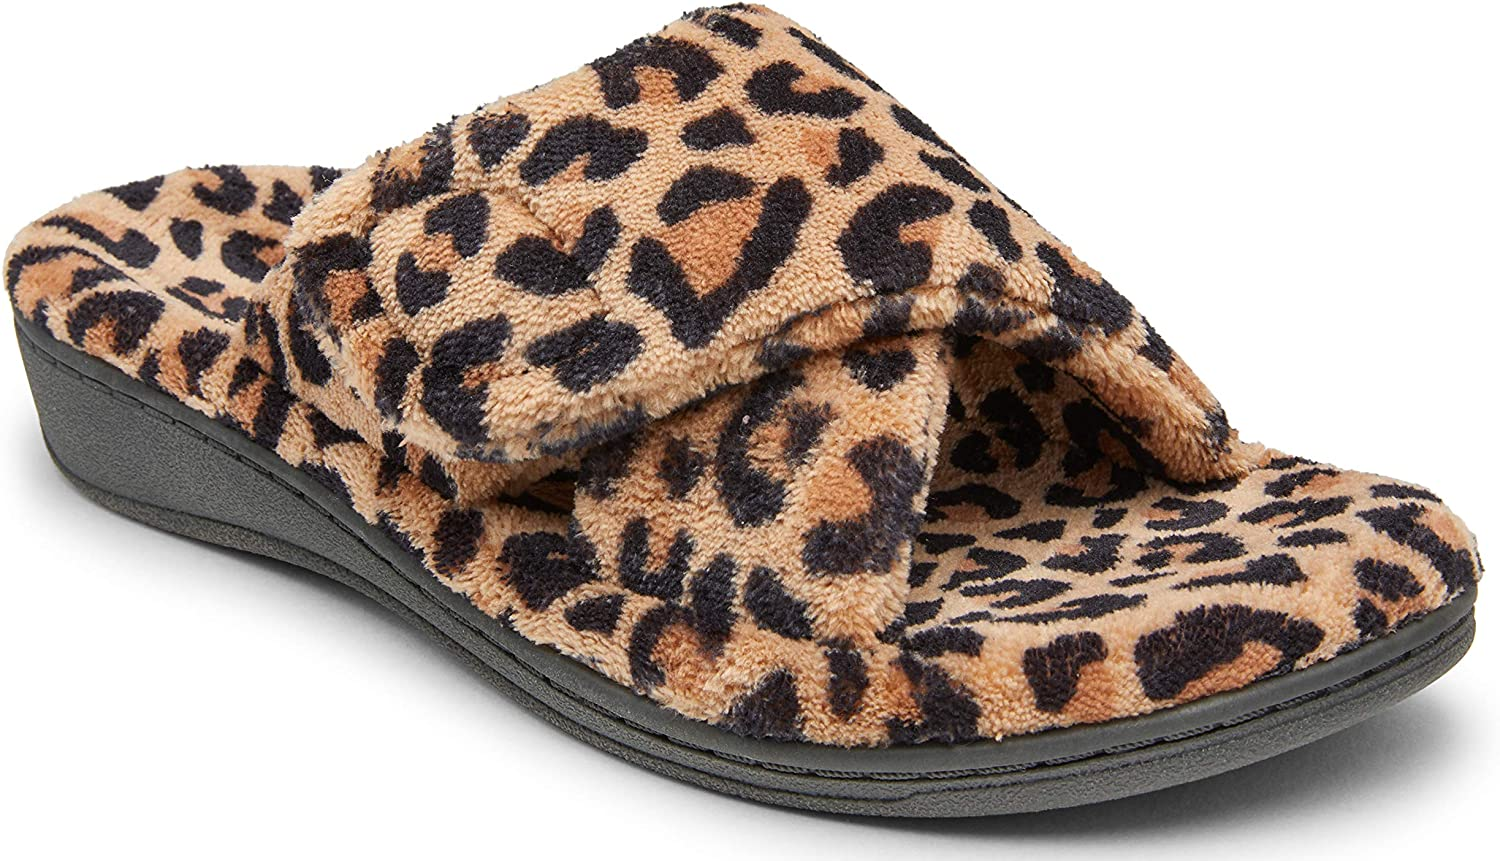 Vionic Women's Indulge Relax Slipper - Ladies Comfortable Cozy Adjustable House Slippers with Concealed Orthotic Arch Support Leopard Natural 10 Medium US